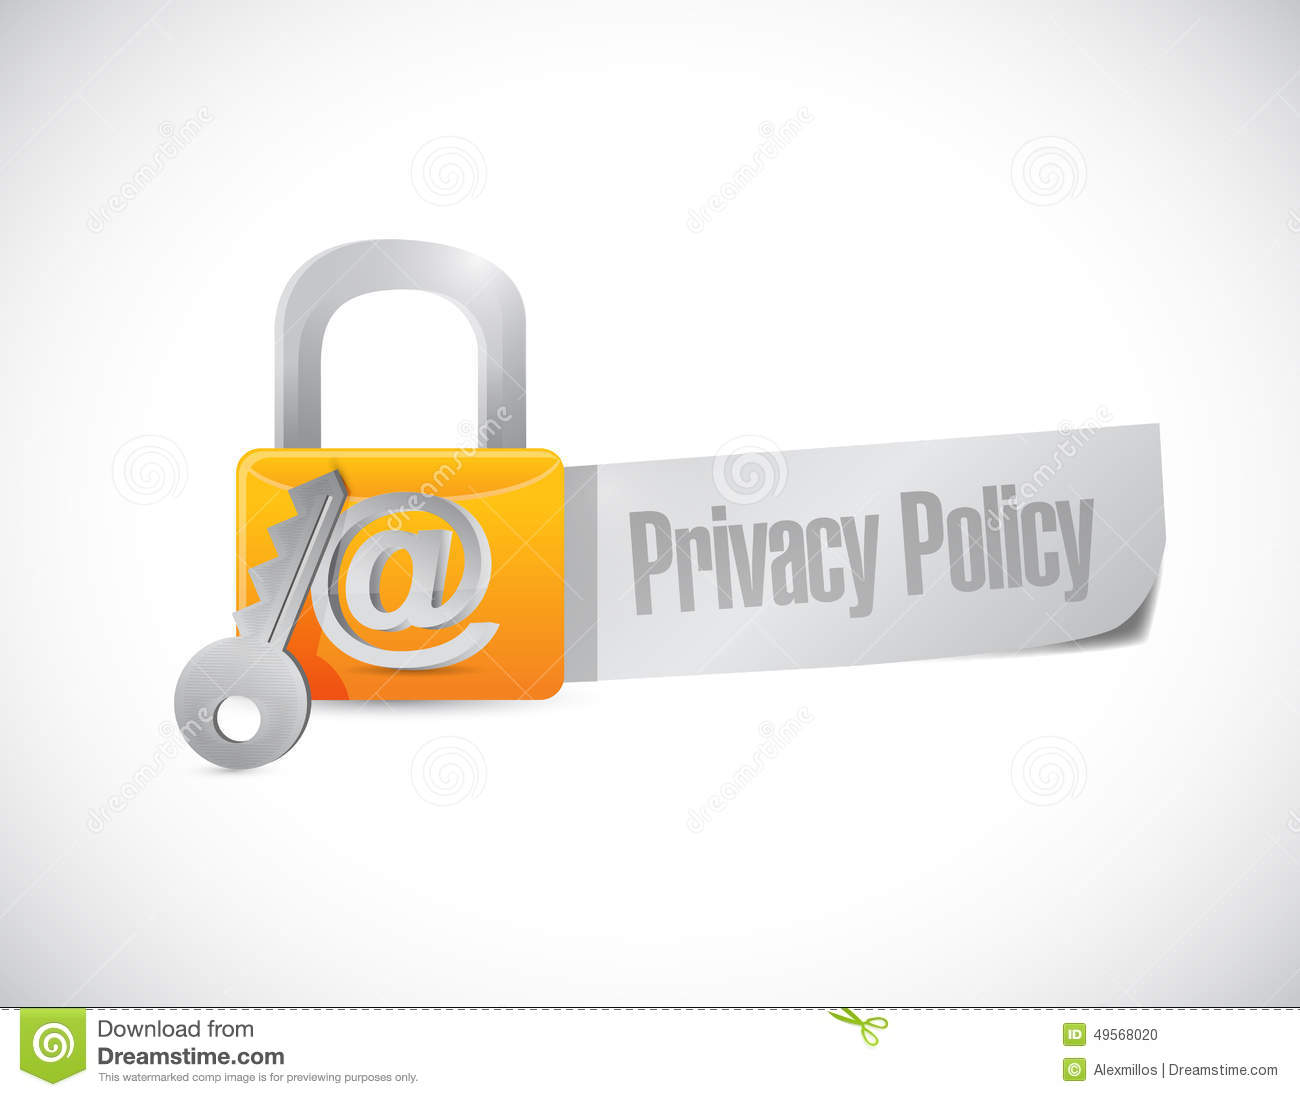 Privacy Policy: Privacy Policy Lock Sign Stock Illustration. Image Of